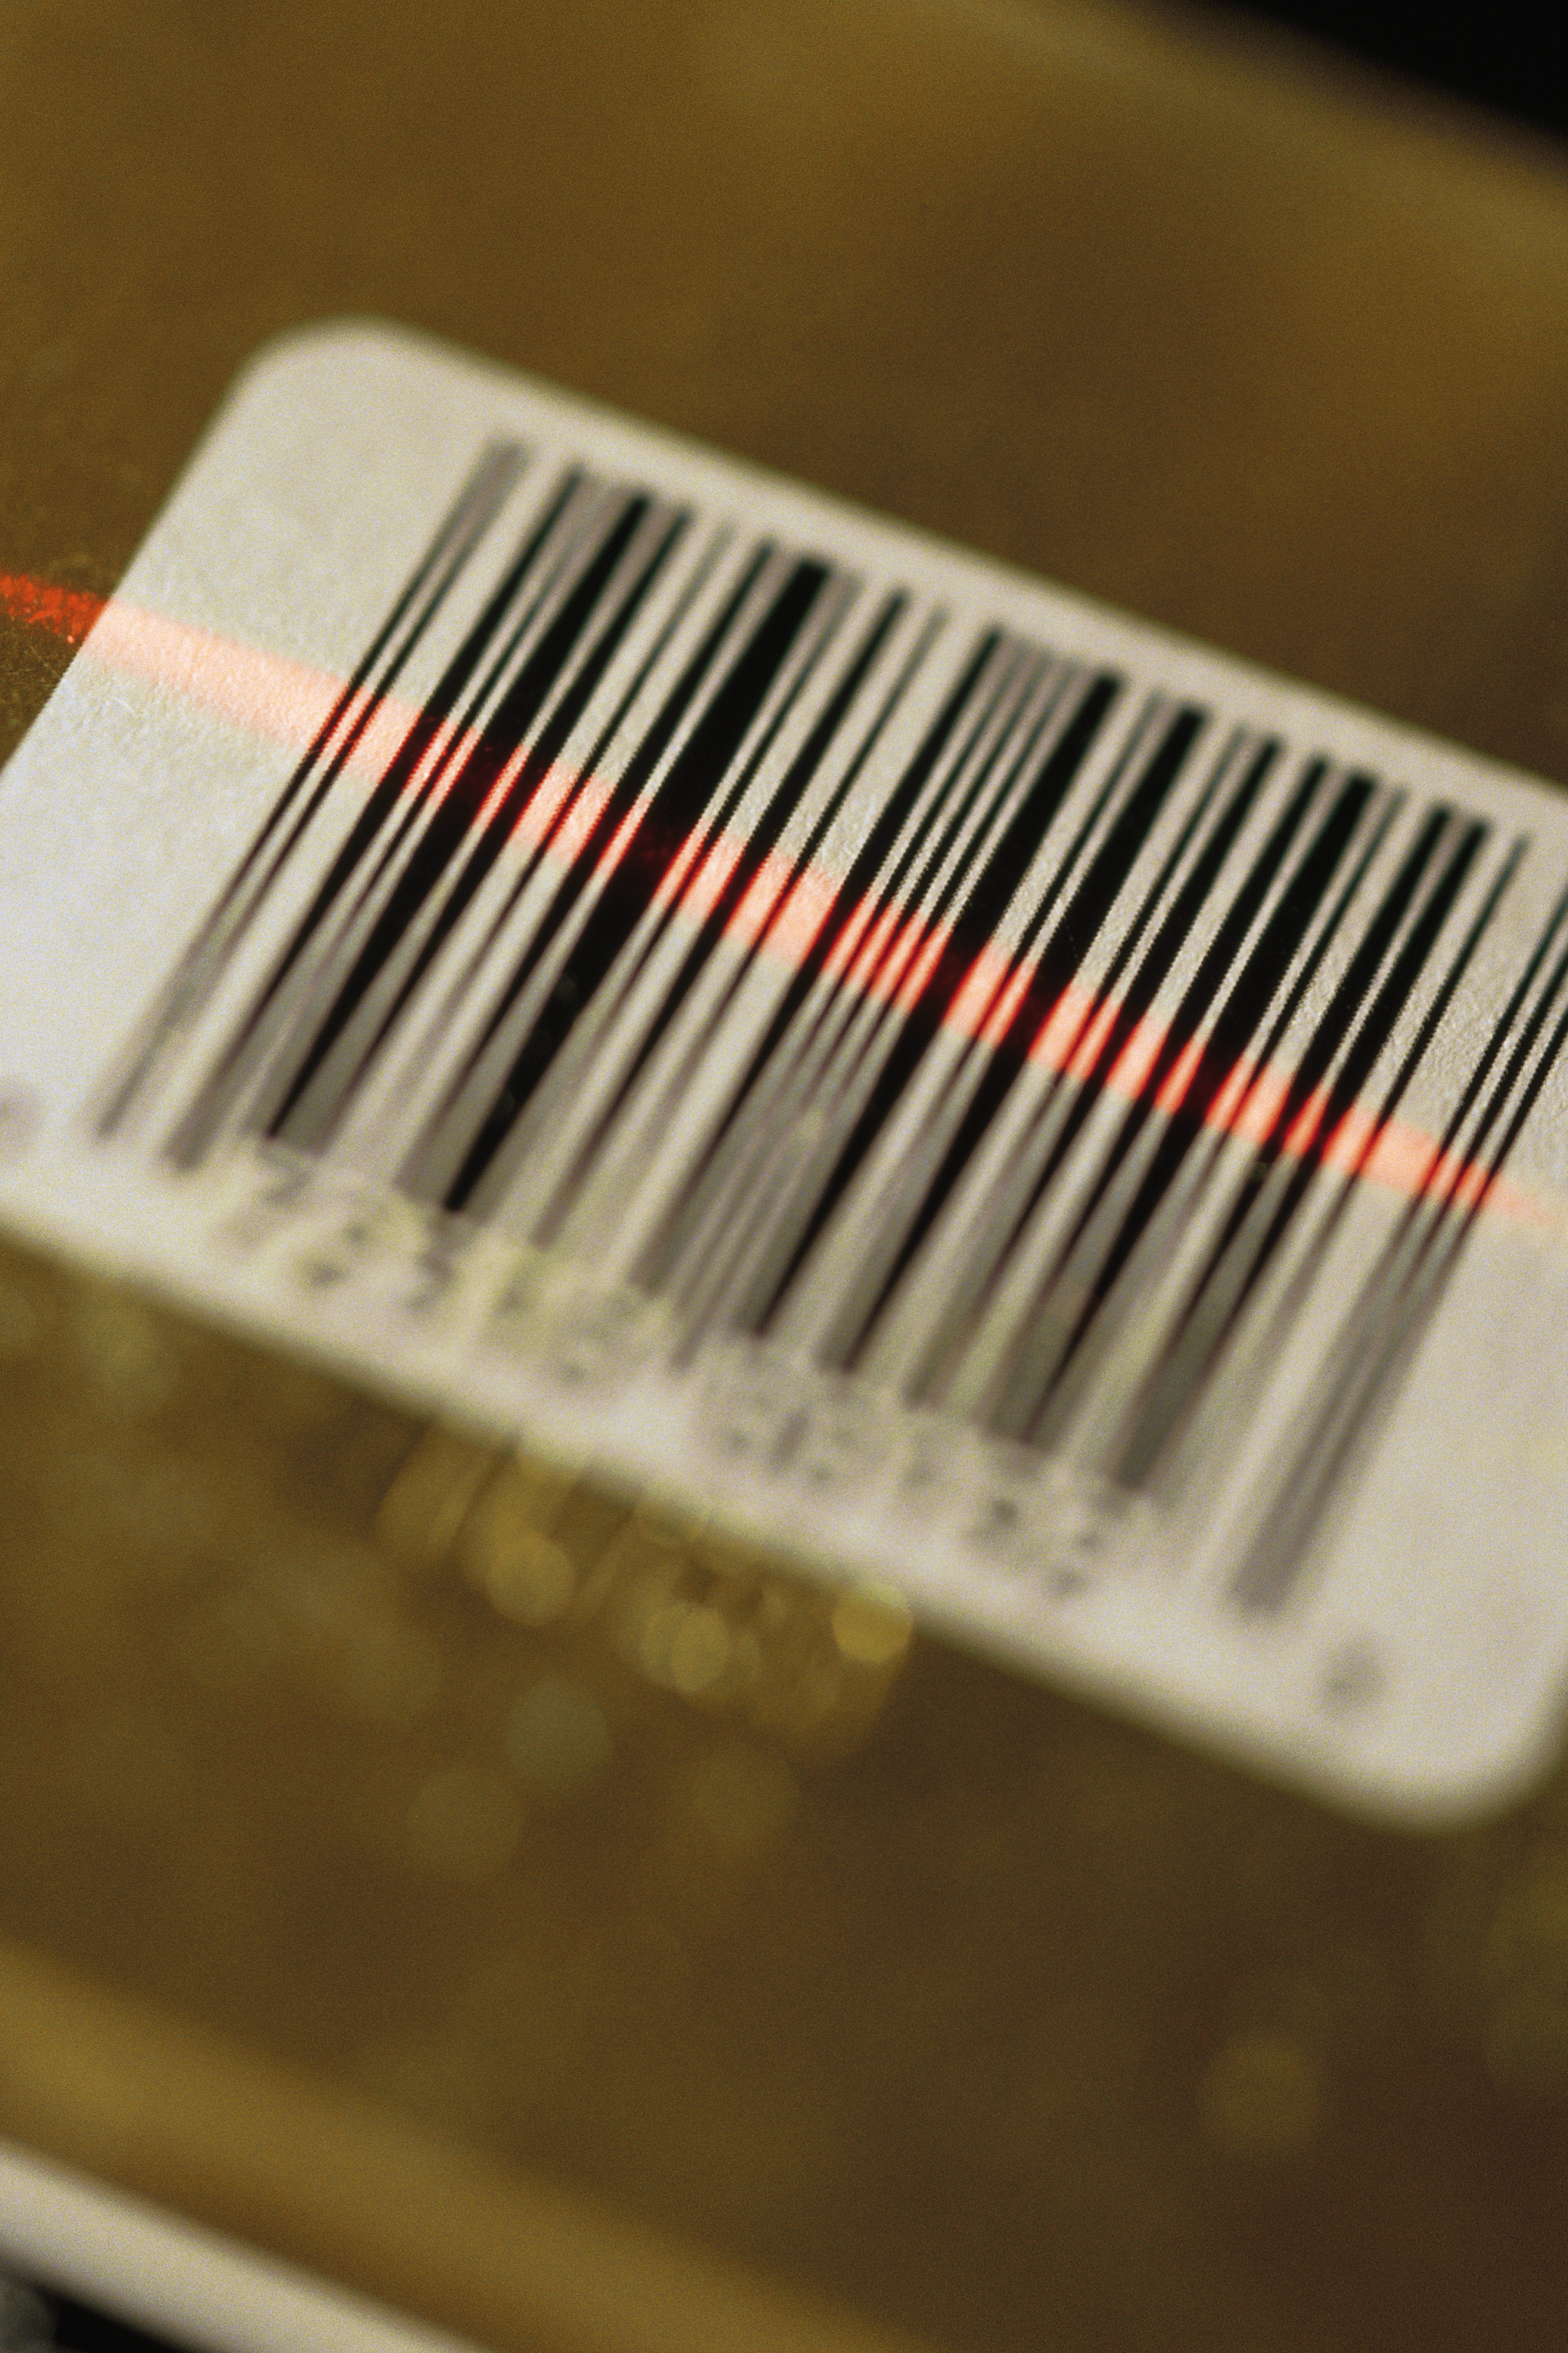 How to Decode a UPC Number | Bizfluent